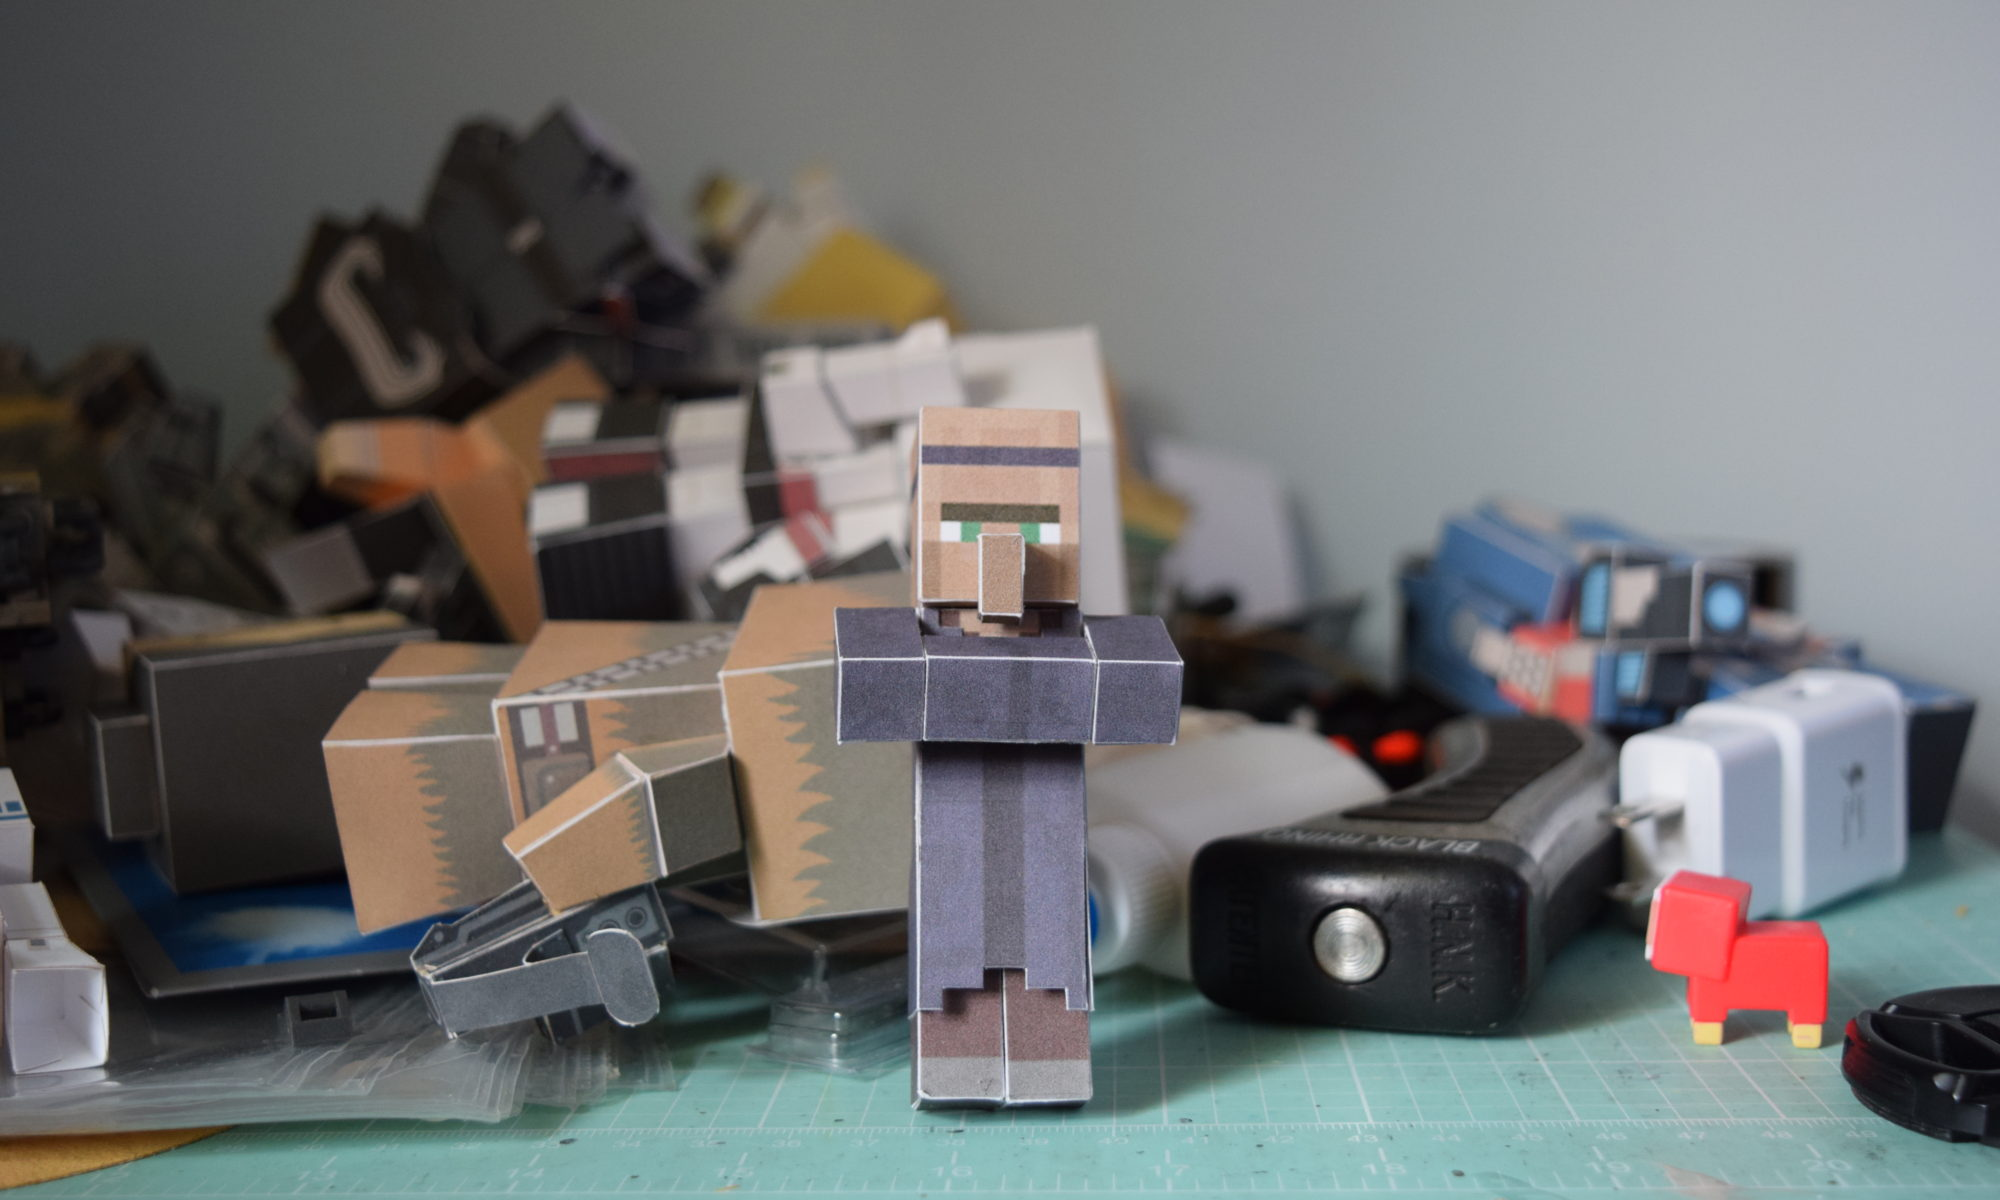 PaperCraftable.